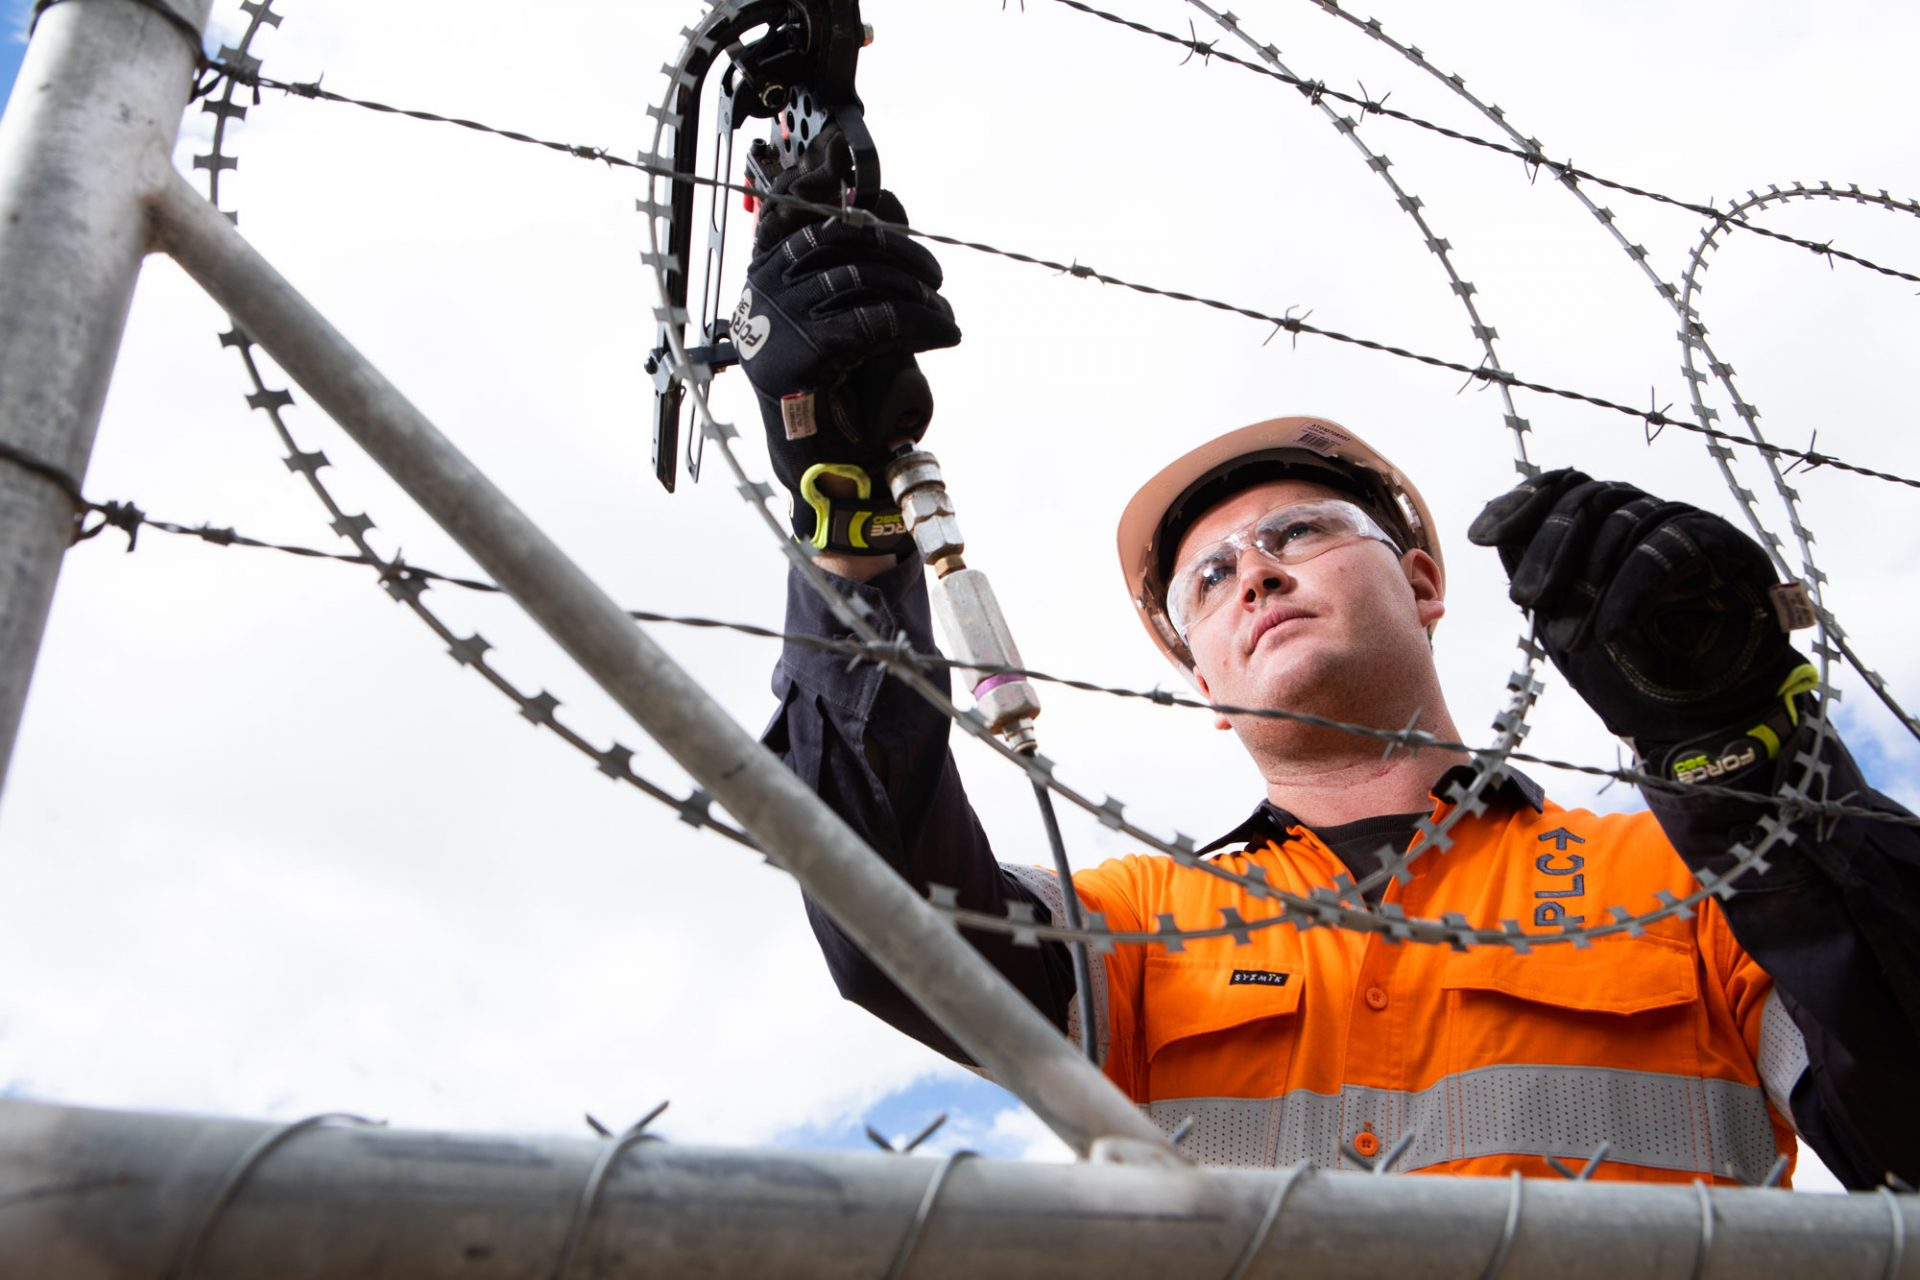 PLC worker installs security razor wire.